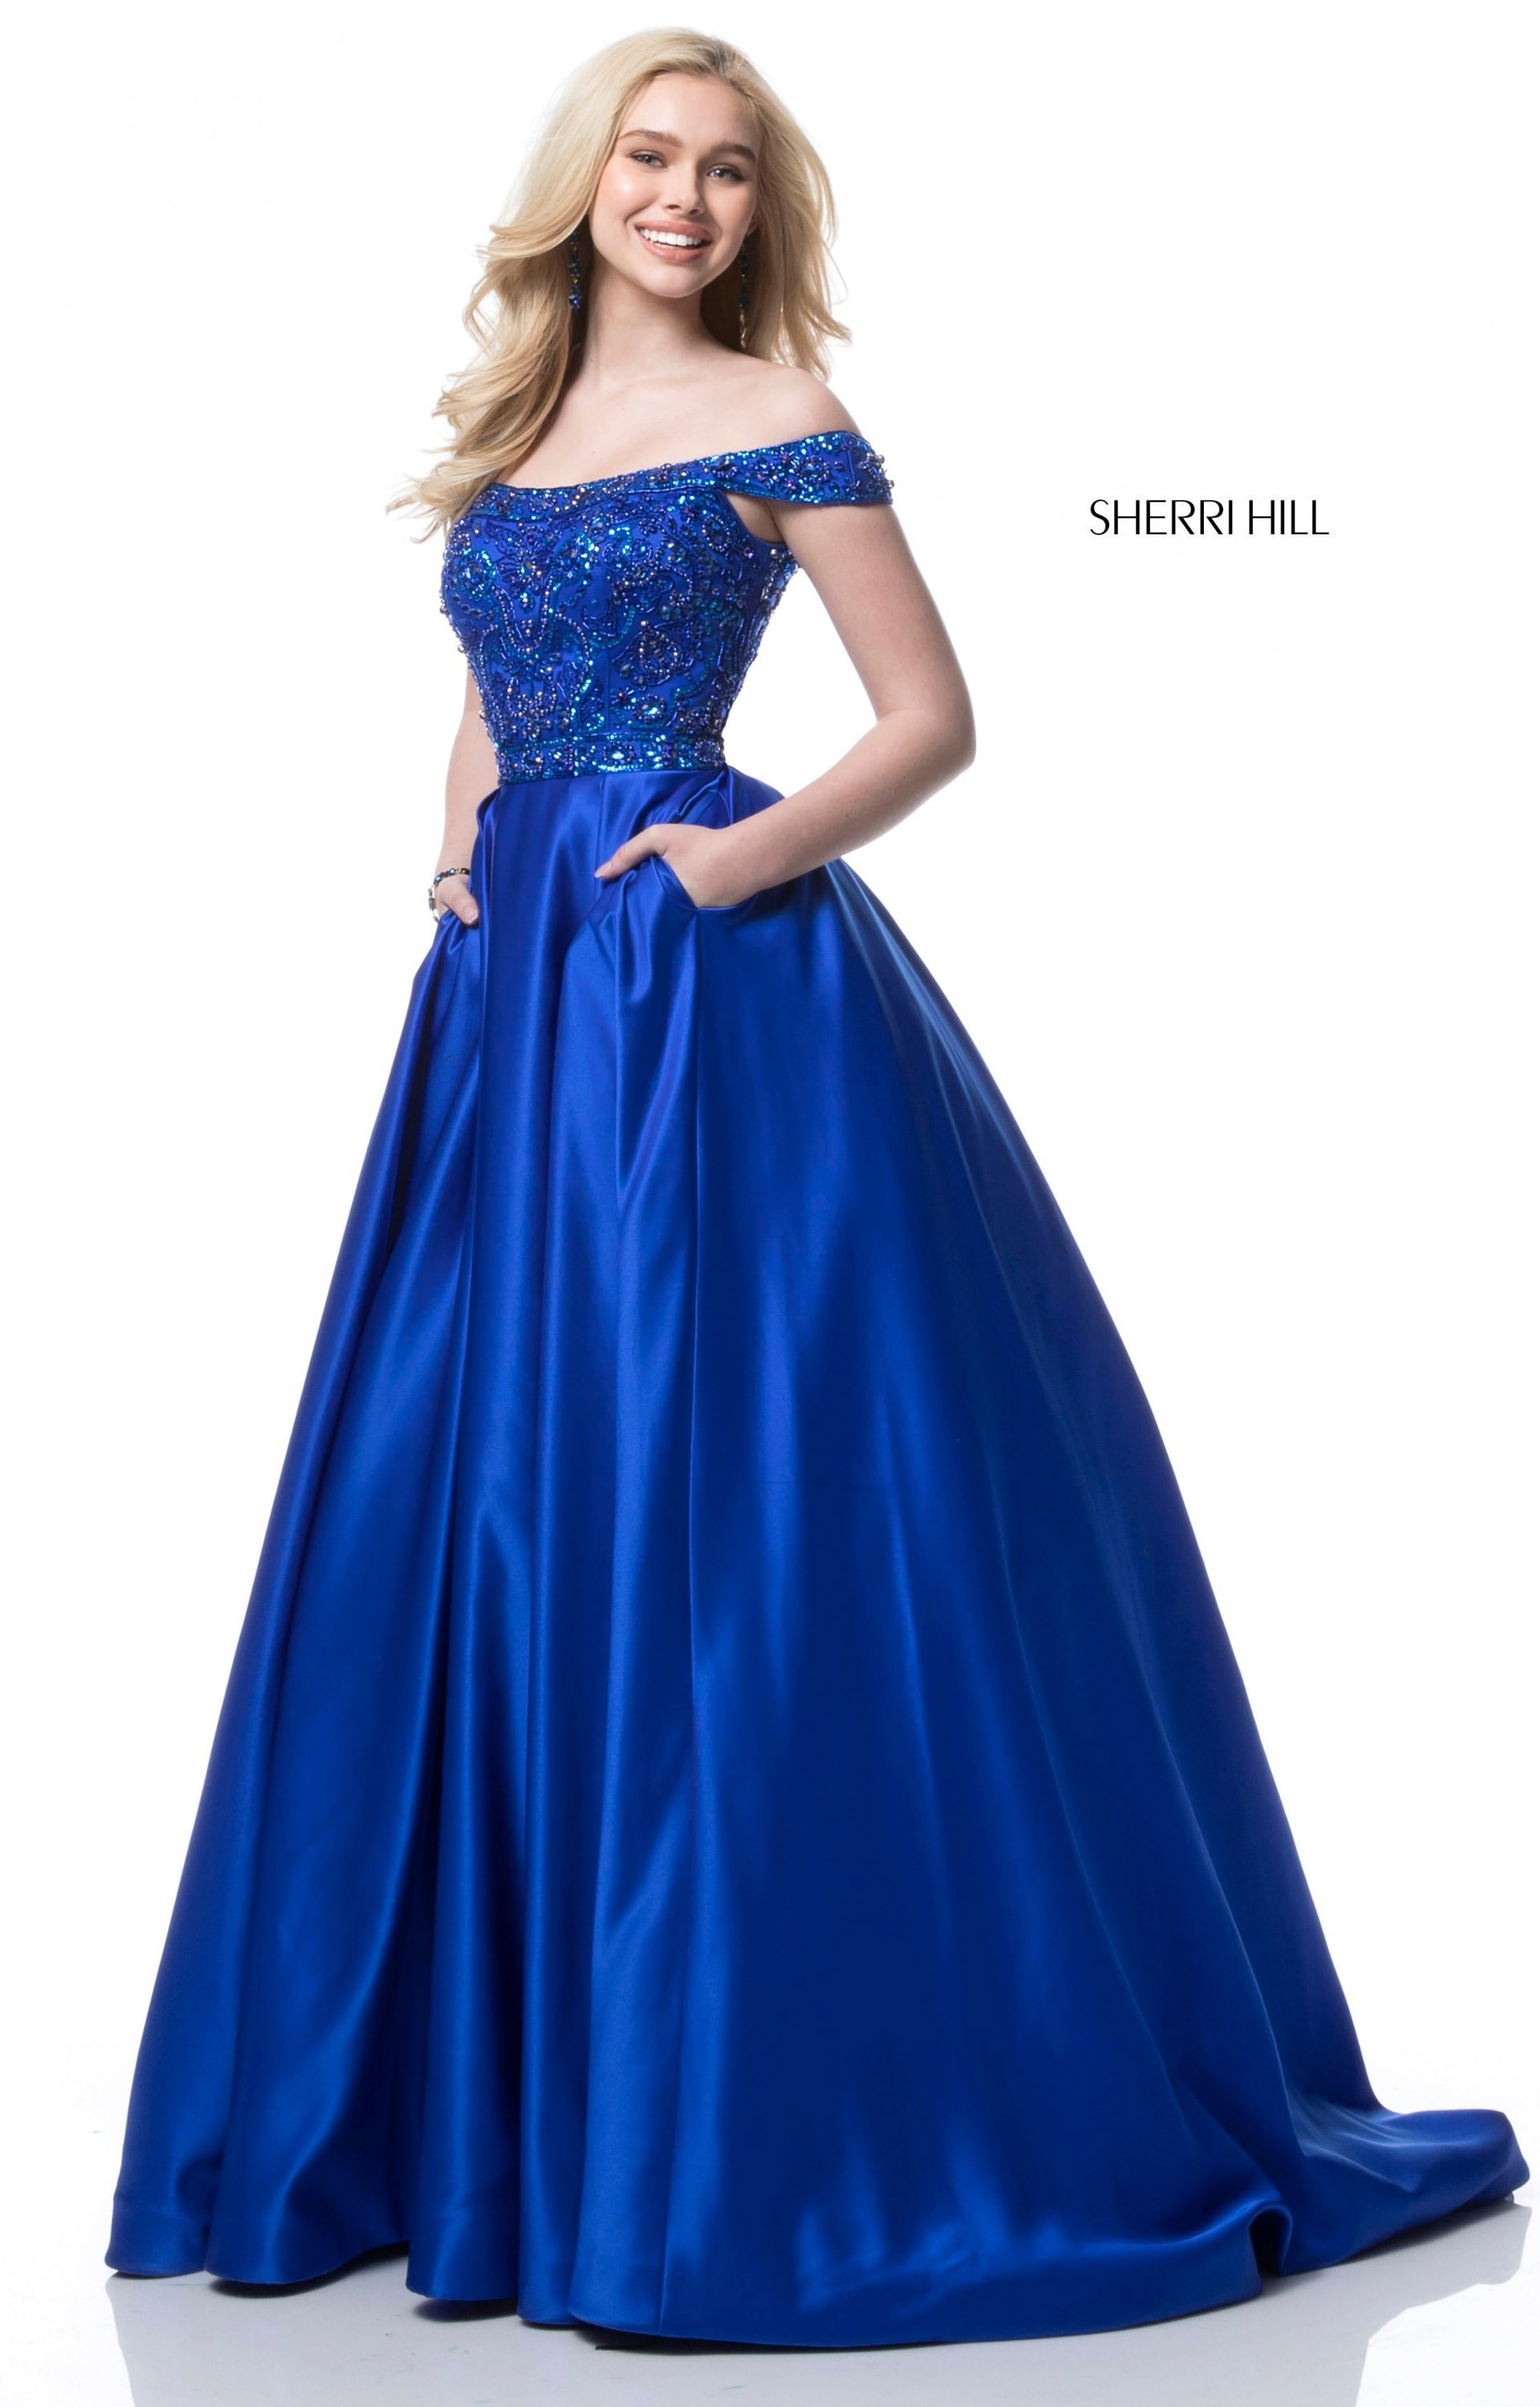 Sherri Hill 51610 - Off the Shoulder Satin Ball Gown Prom Dress